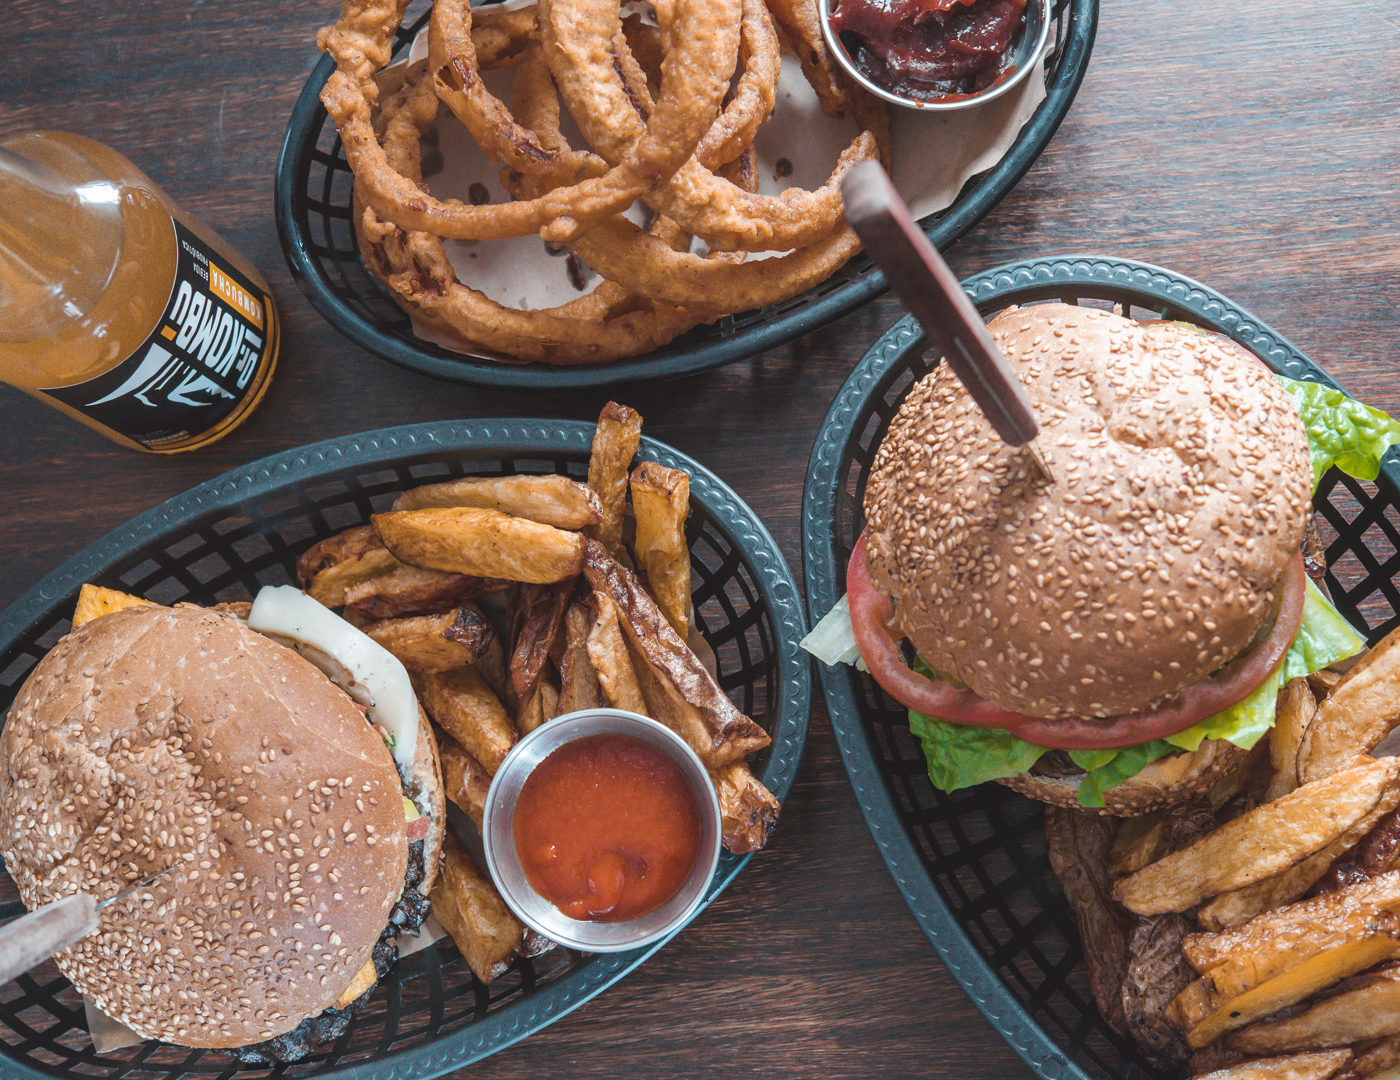 Plant-based vegan burgers and onion rings